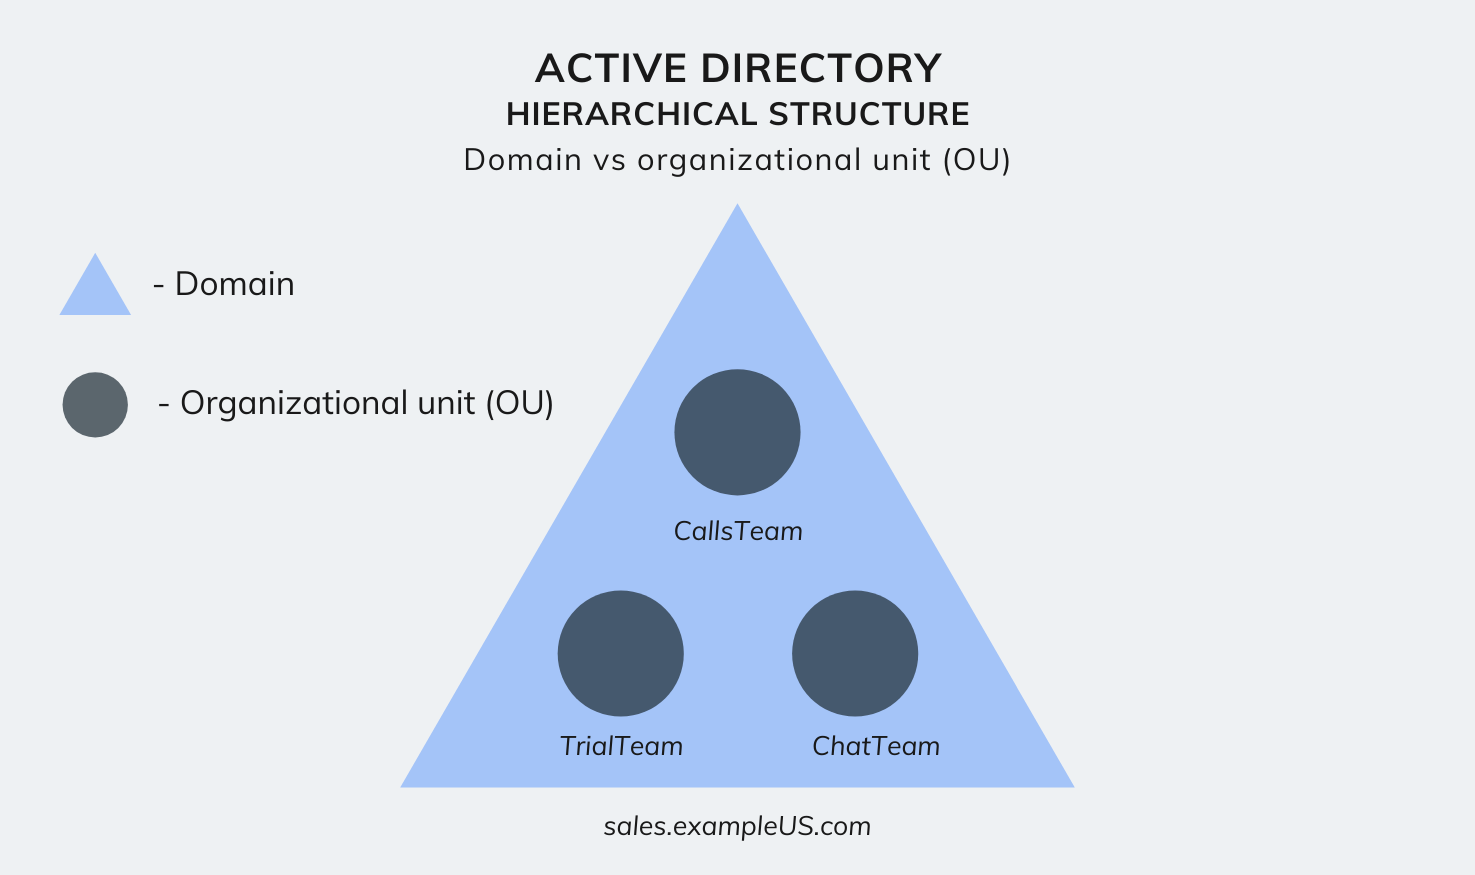 Active Directory hierarchical structure - Domain vs OU